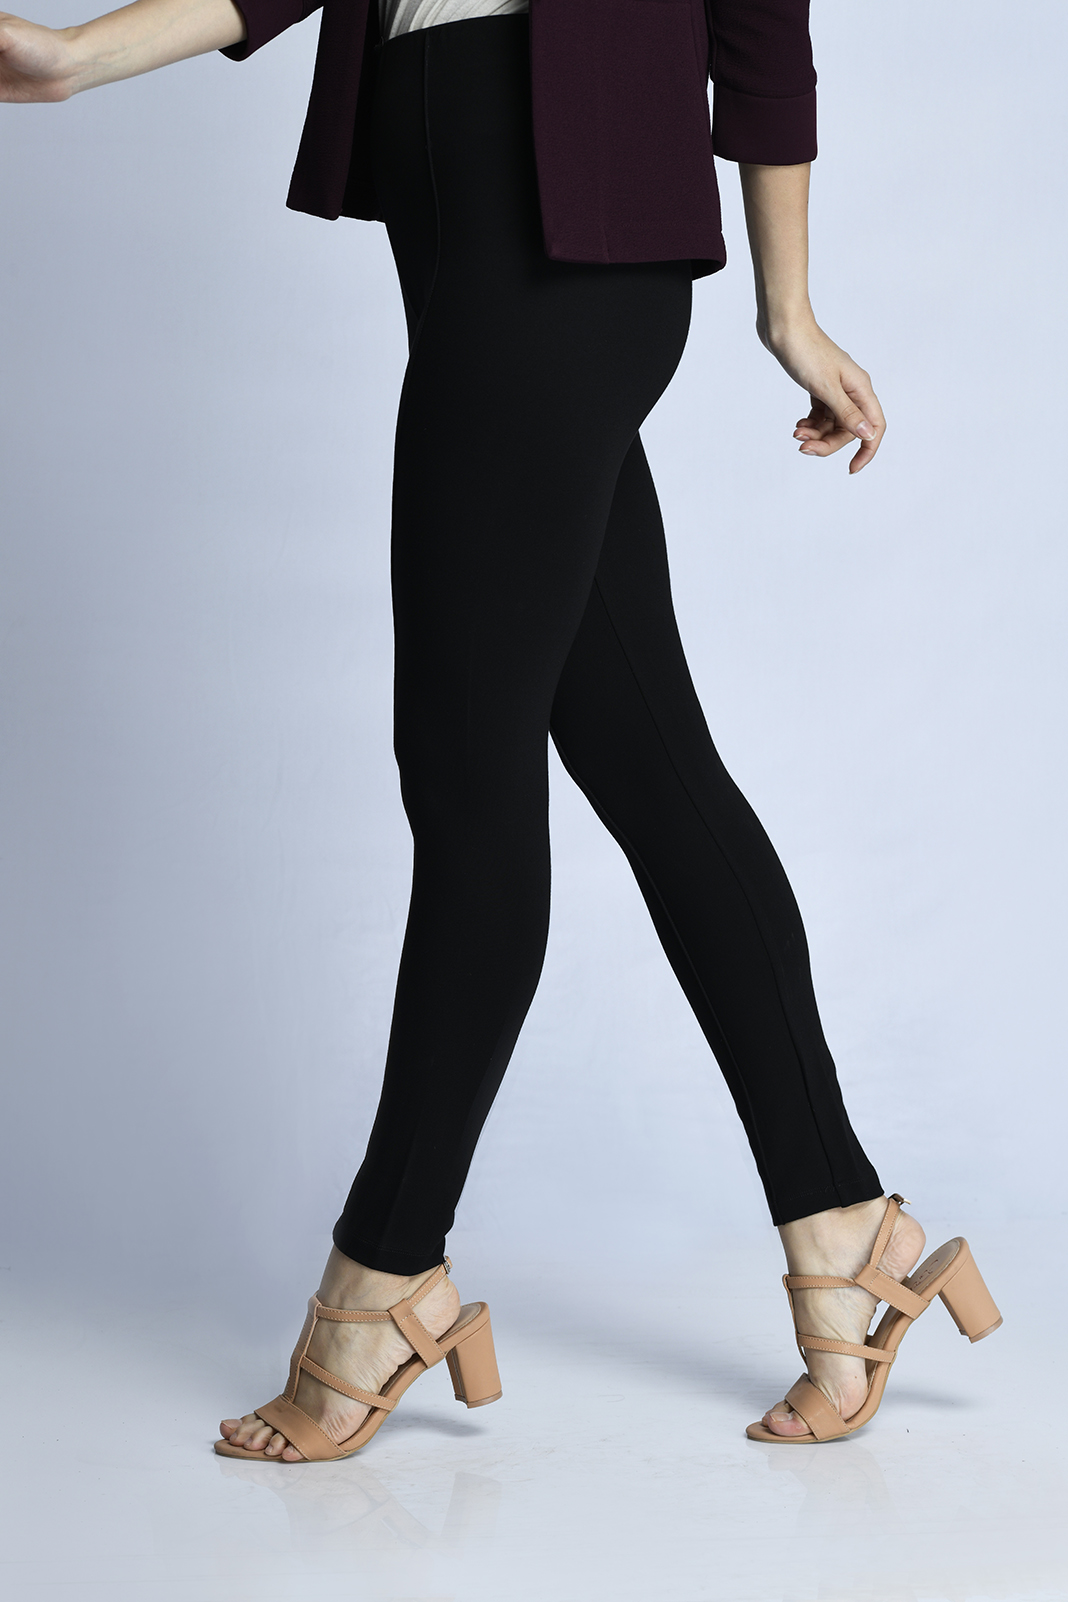 CARDINAL FEMME CELANA CHINOS CASUAL OFFICER (HITAM)